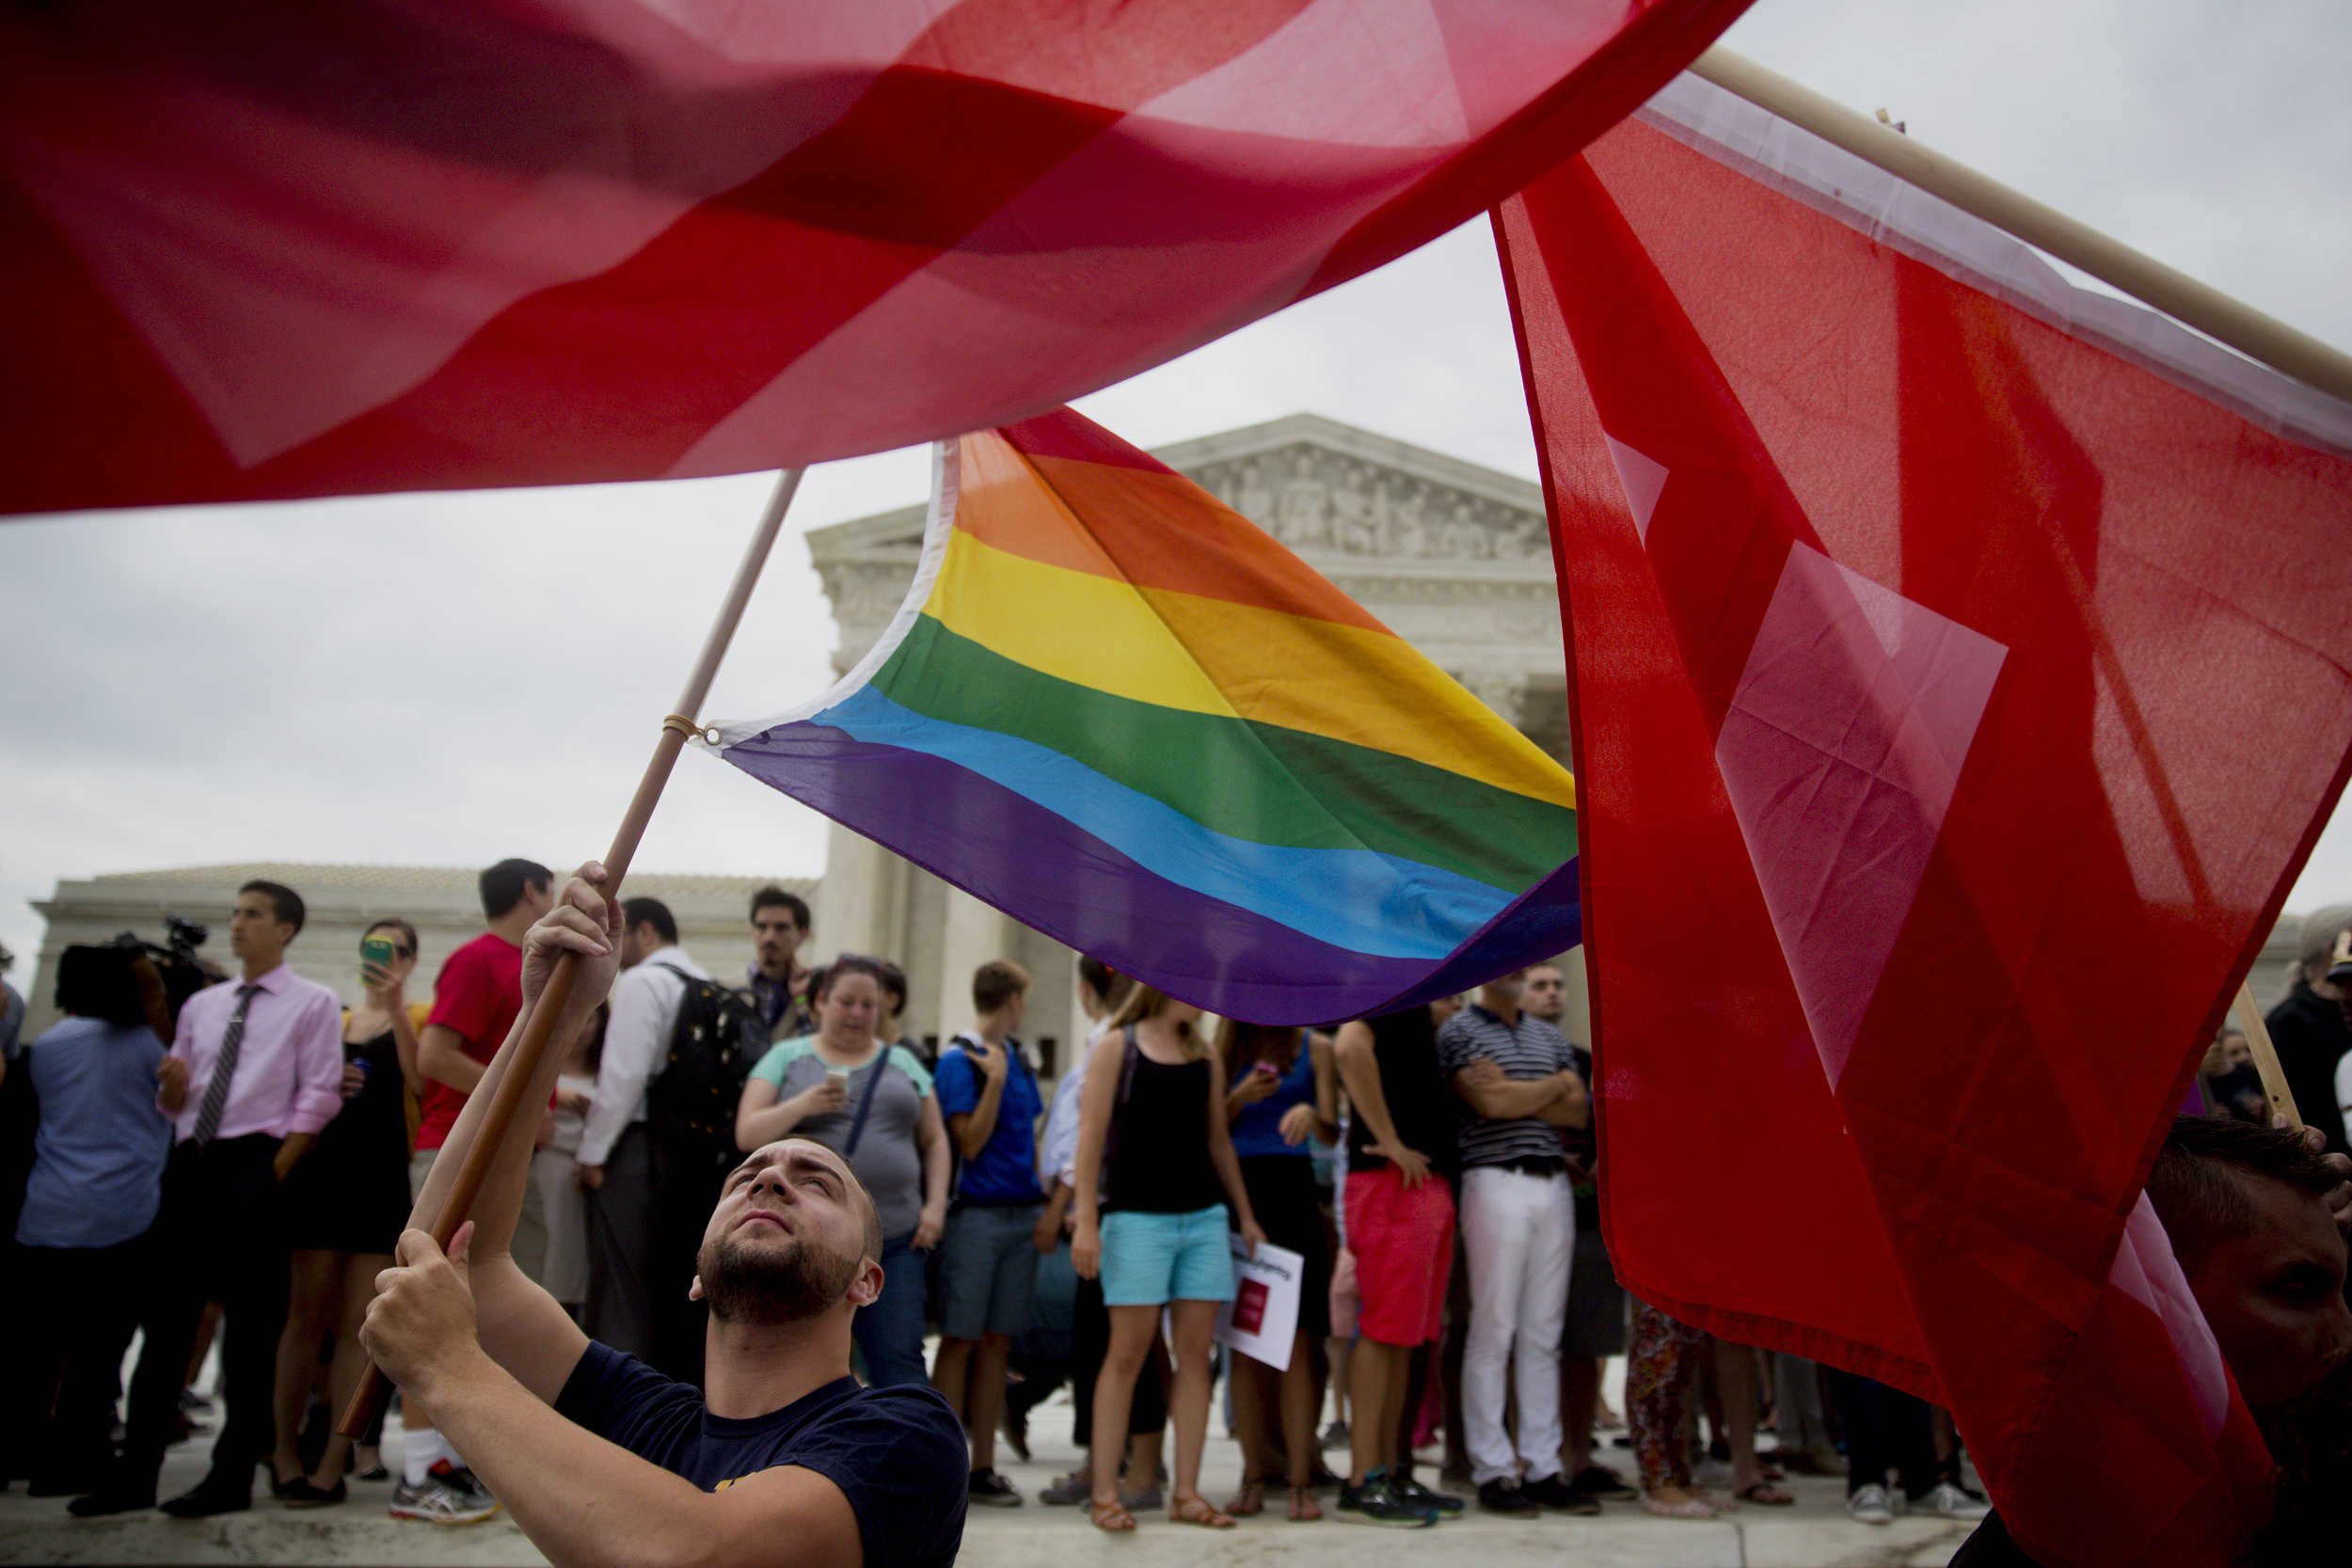 Supreme court to meet again to decide on hearing gay marriage